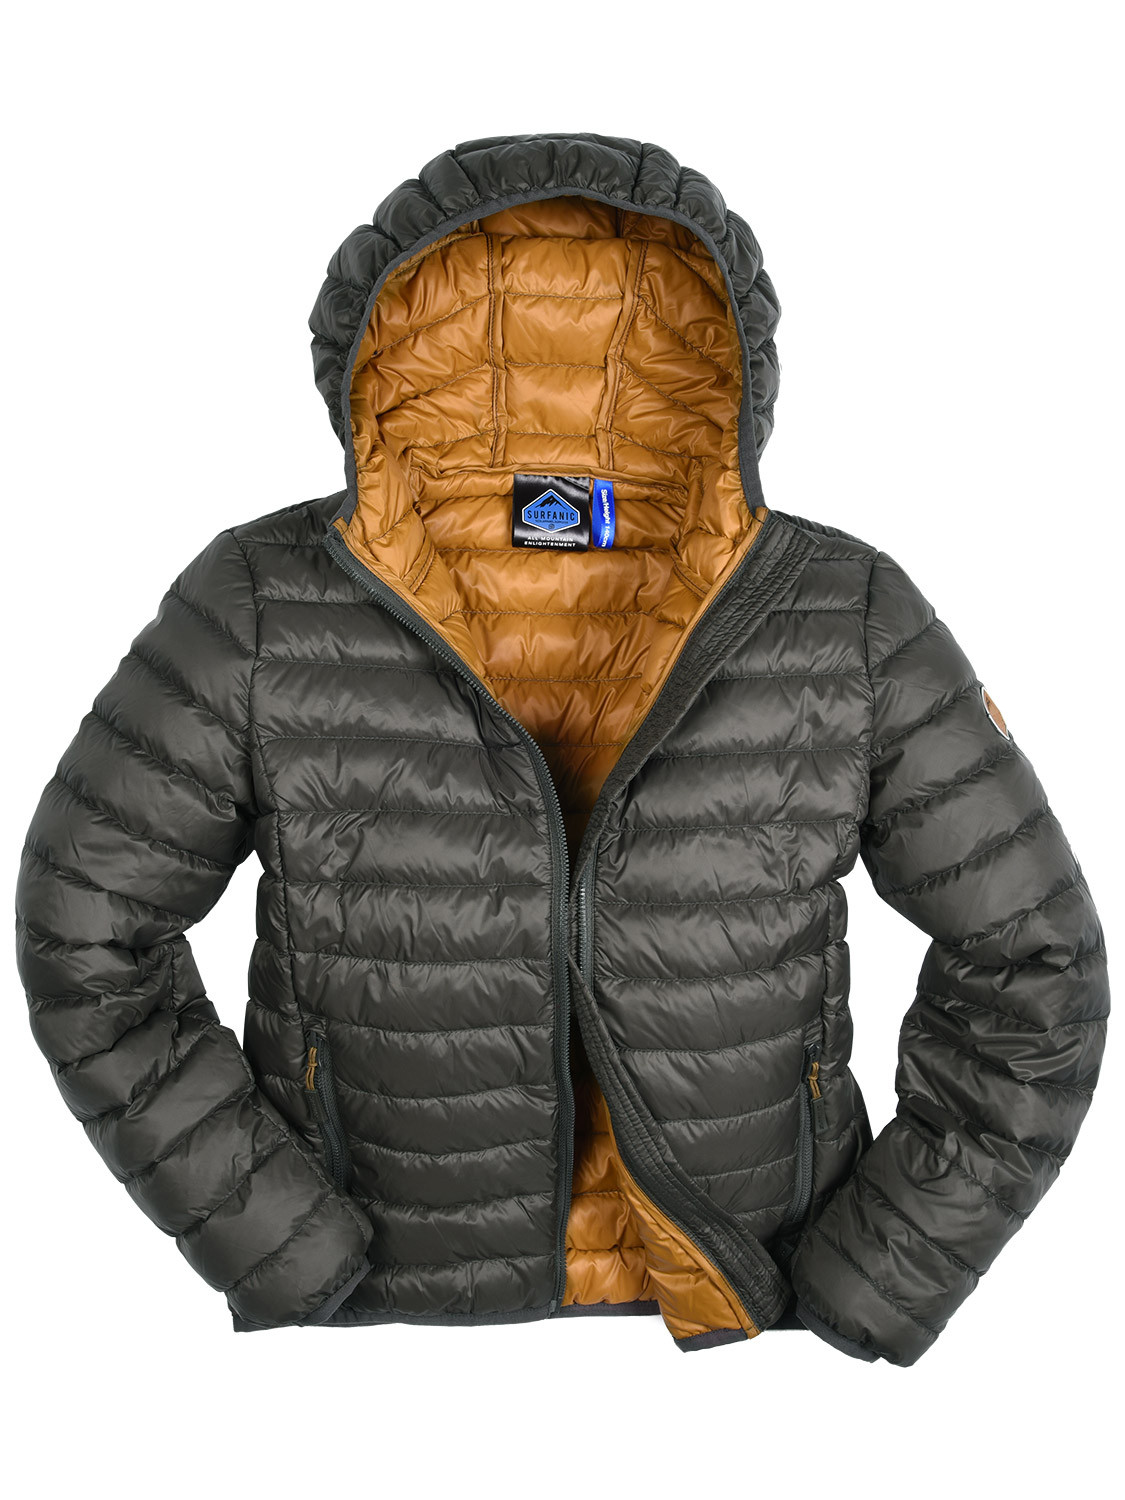 Hawk Lightweight Down Jacket